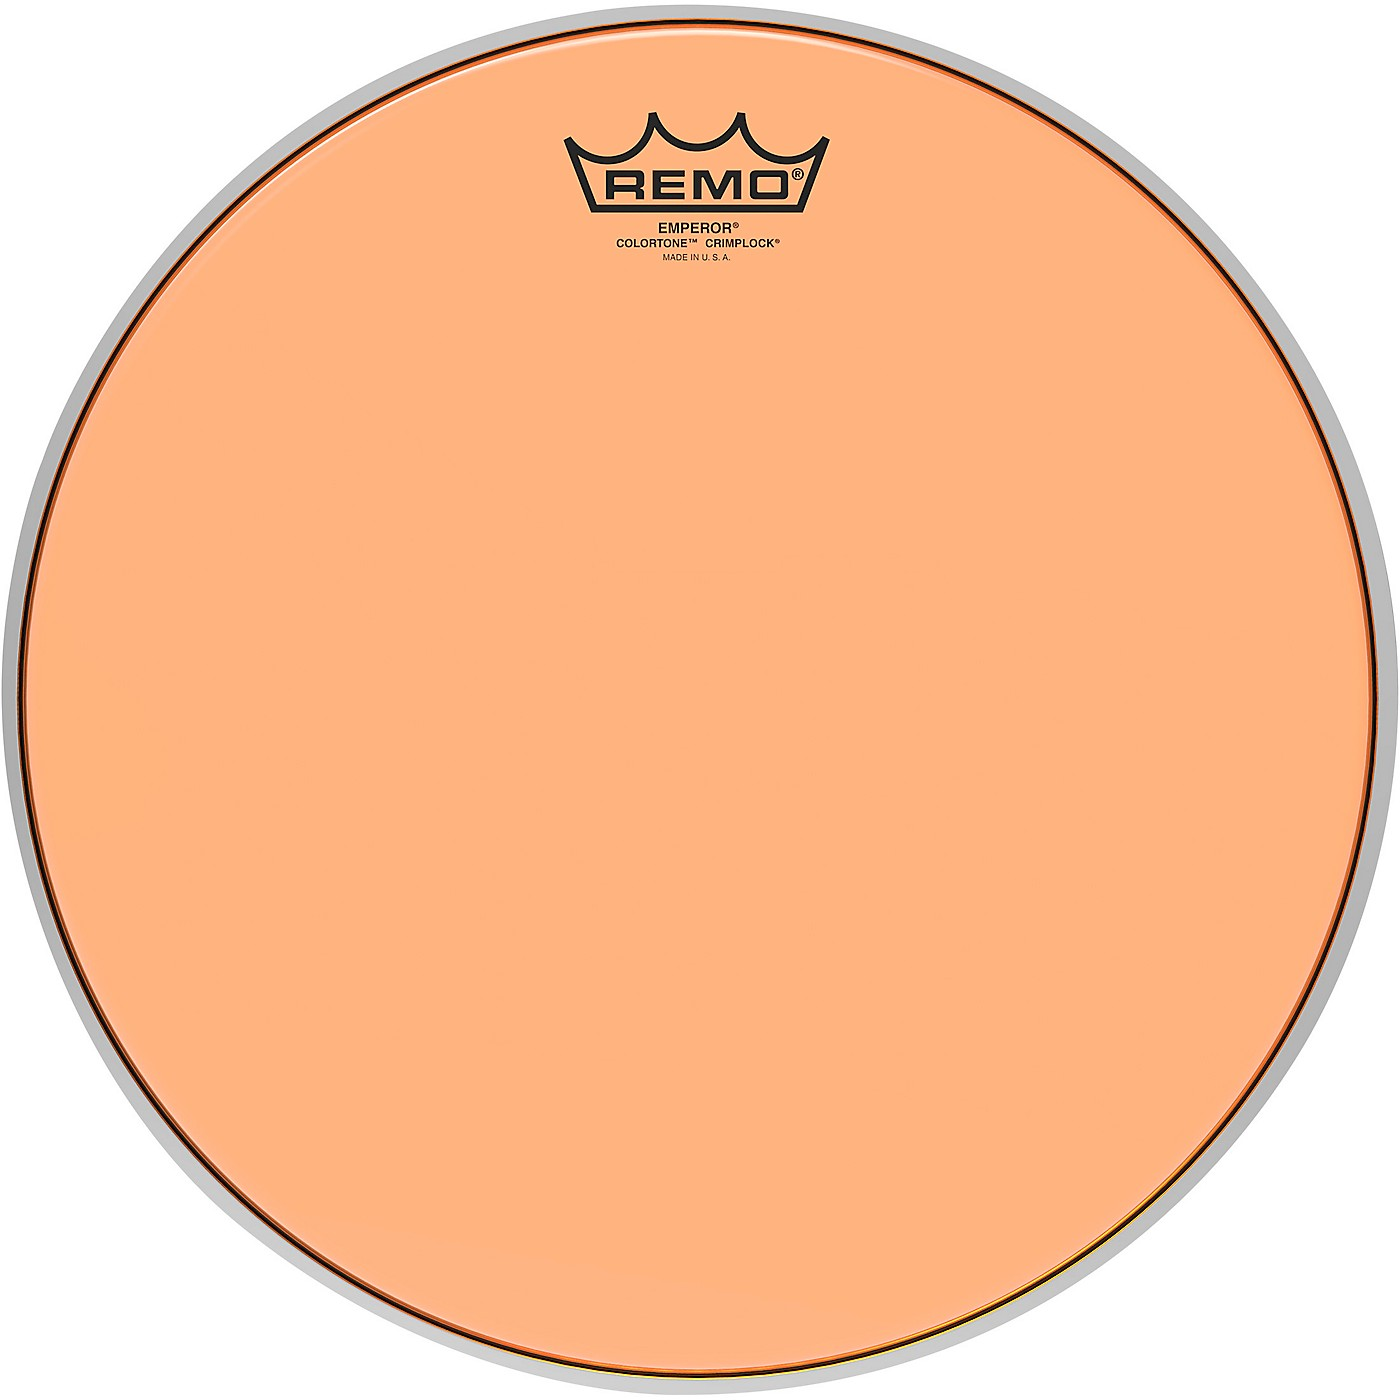 Remo Emperor Colortone Crimplock Orange Tenor Drum Head thumbnail